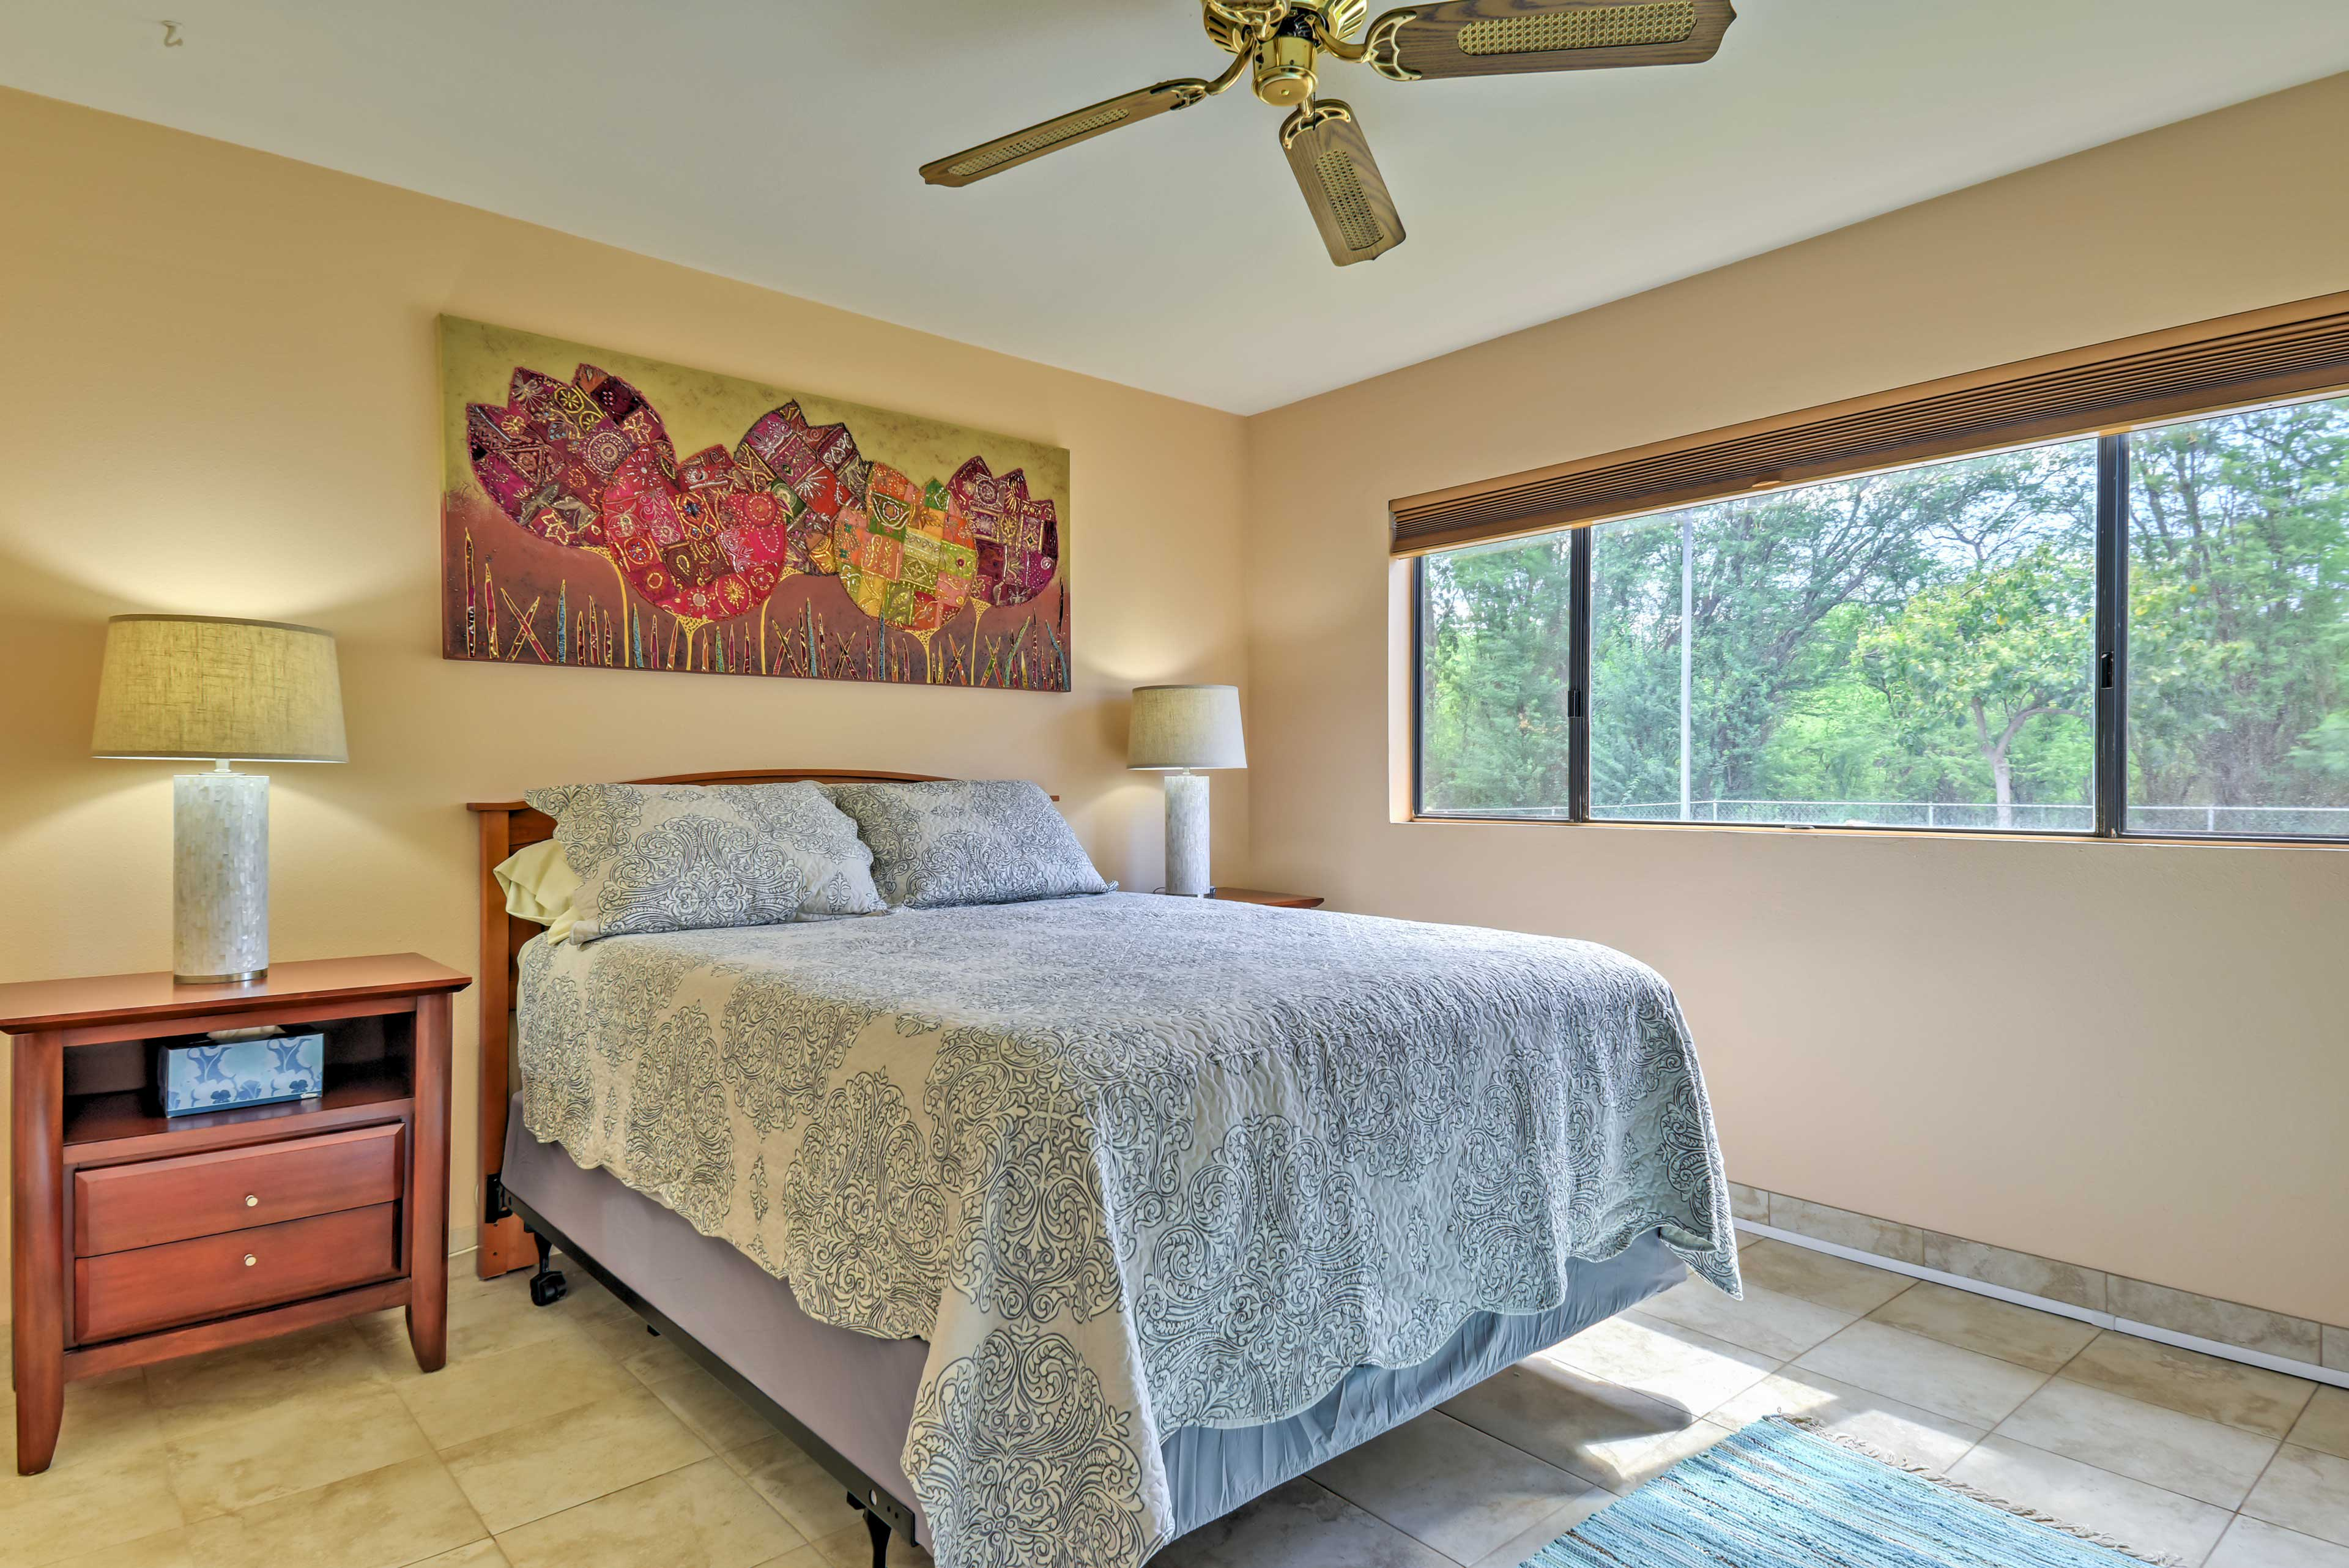 Step into the bedroom, which features a queen-sized bed.